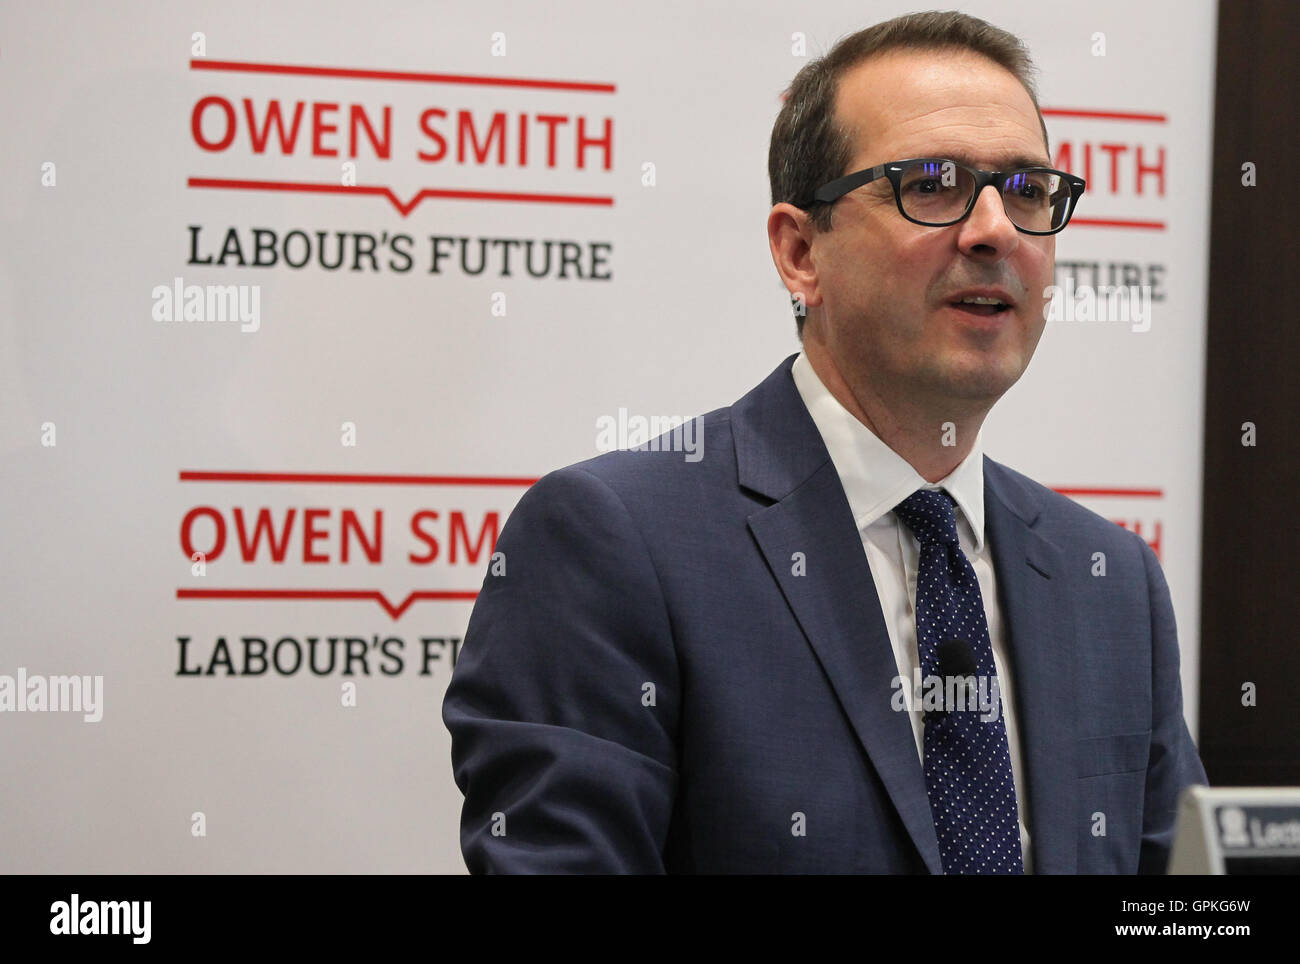 Westminster,  London, UK - 05 Sep 2016 - Labour leadership candidate Owen Smith warns of Britain facing a bleak - Stock Image